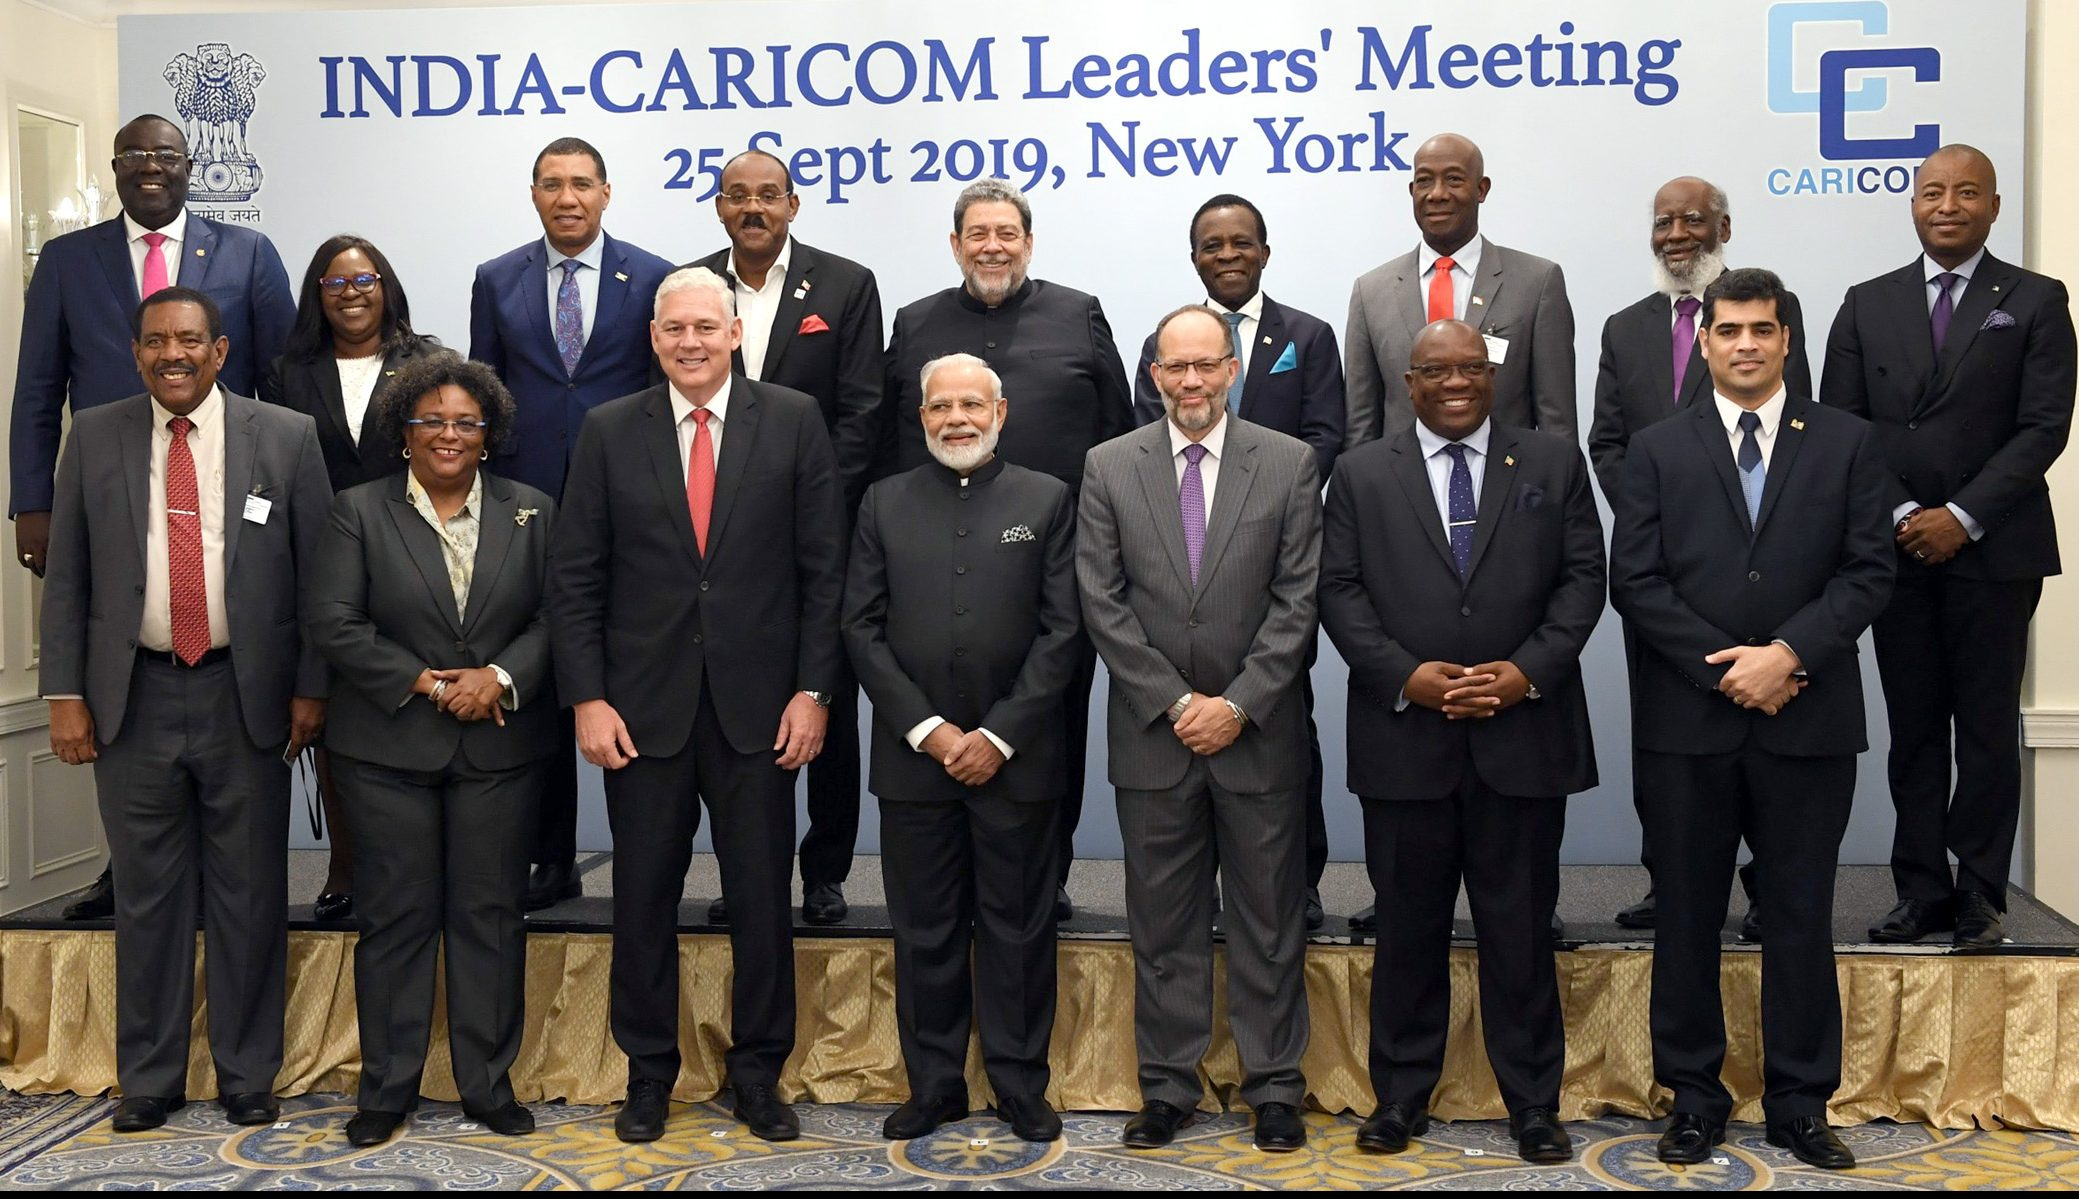 PM met with the leaders of CARICOM at the UNGA PM met with the leaders of CARICOM at the UNGA